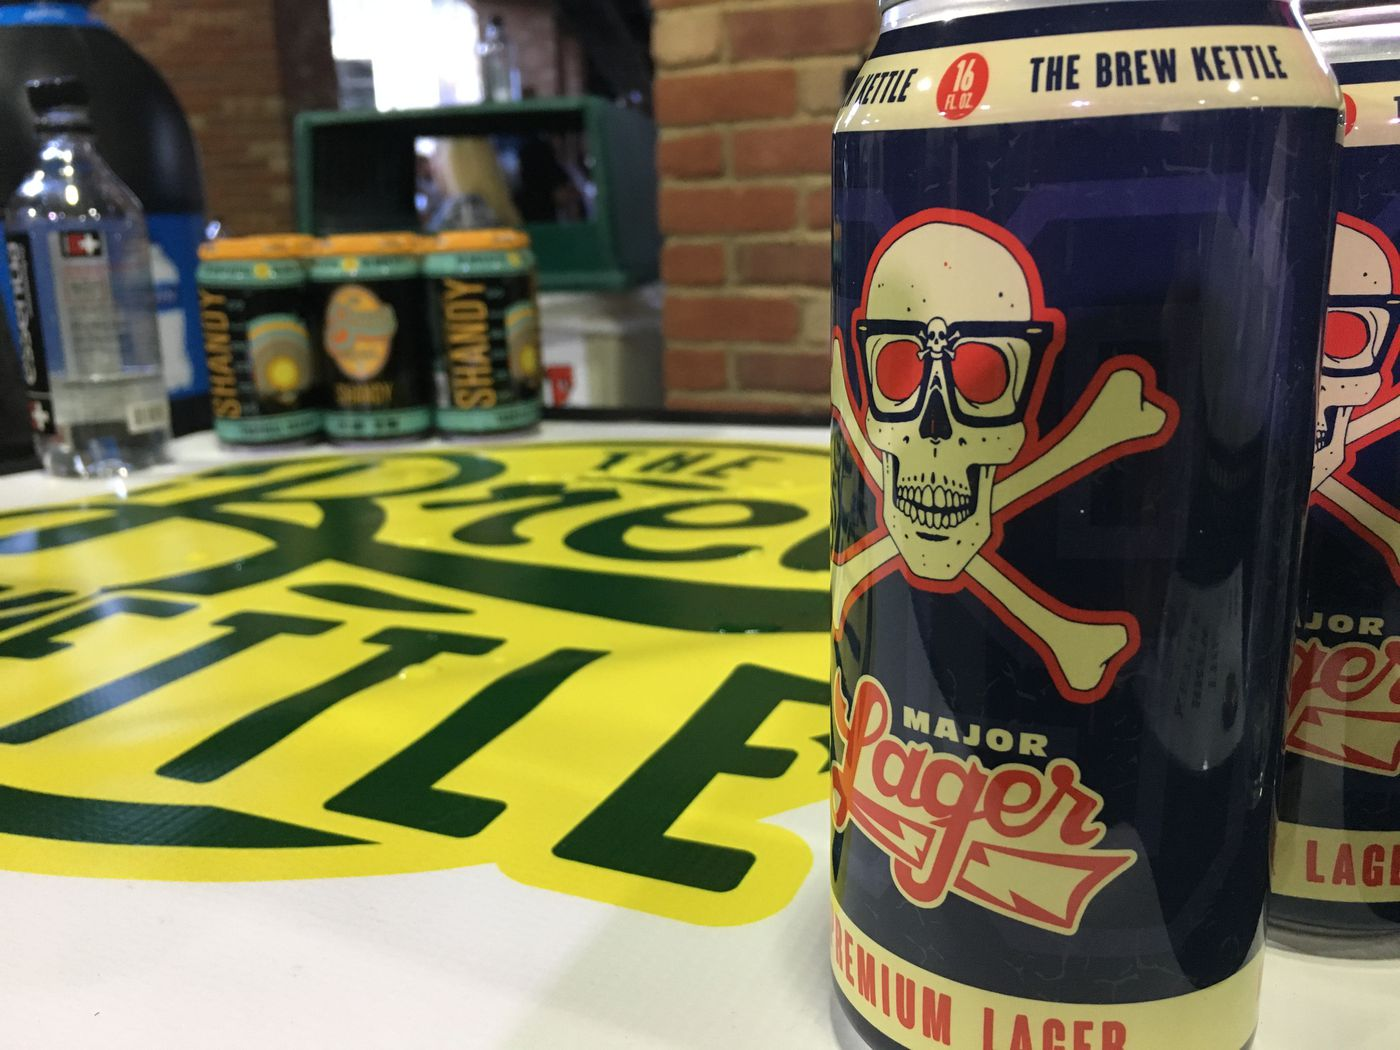 Package 25: Be a brewer for the day! Brew your own beer at The Brew Kettle in Strongsville. Includes 36 22-ounce beers with custom labels and bottles. | Value: $100 | Minimum bid: $50